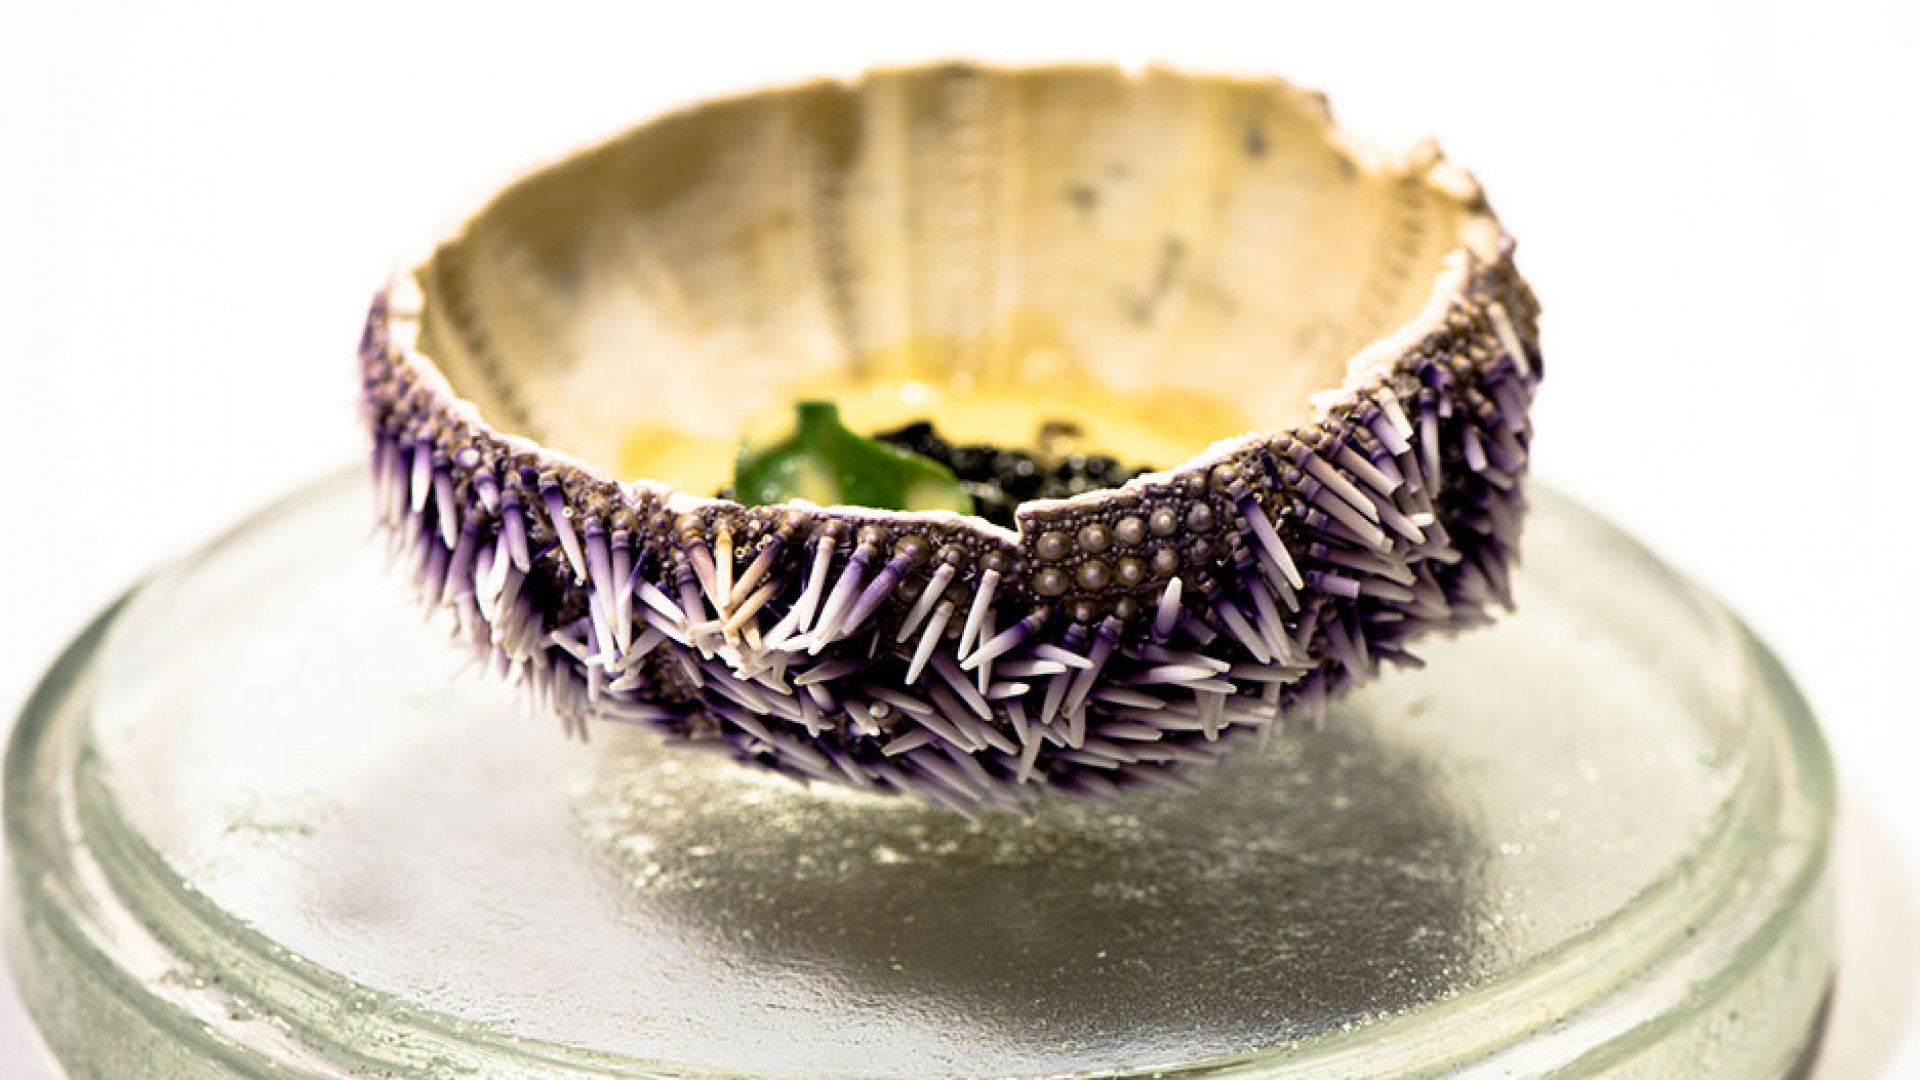 An example of the New Nordic cuisine